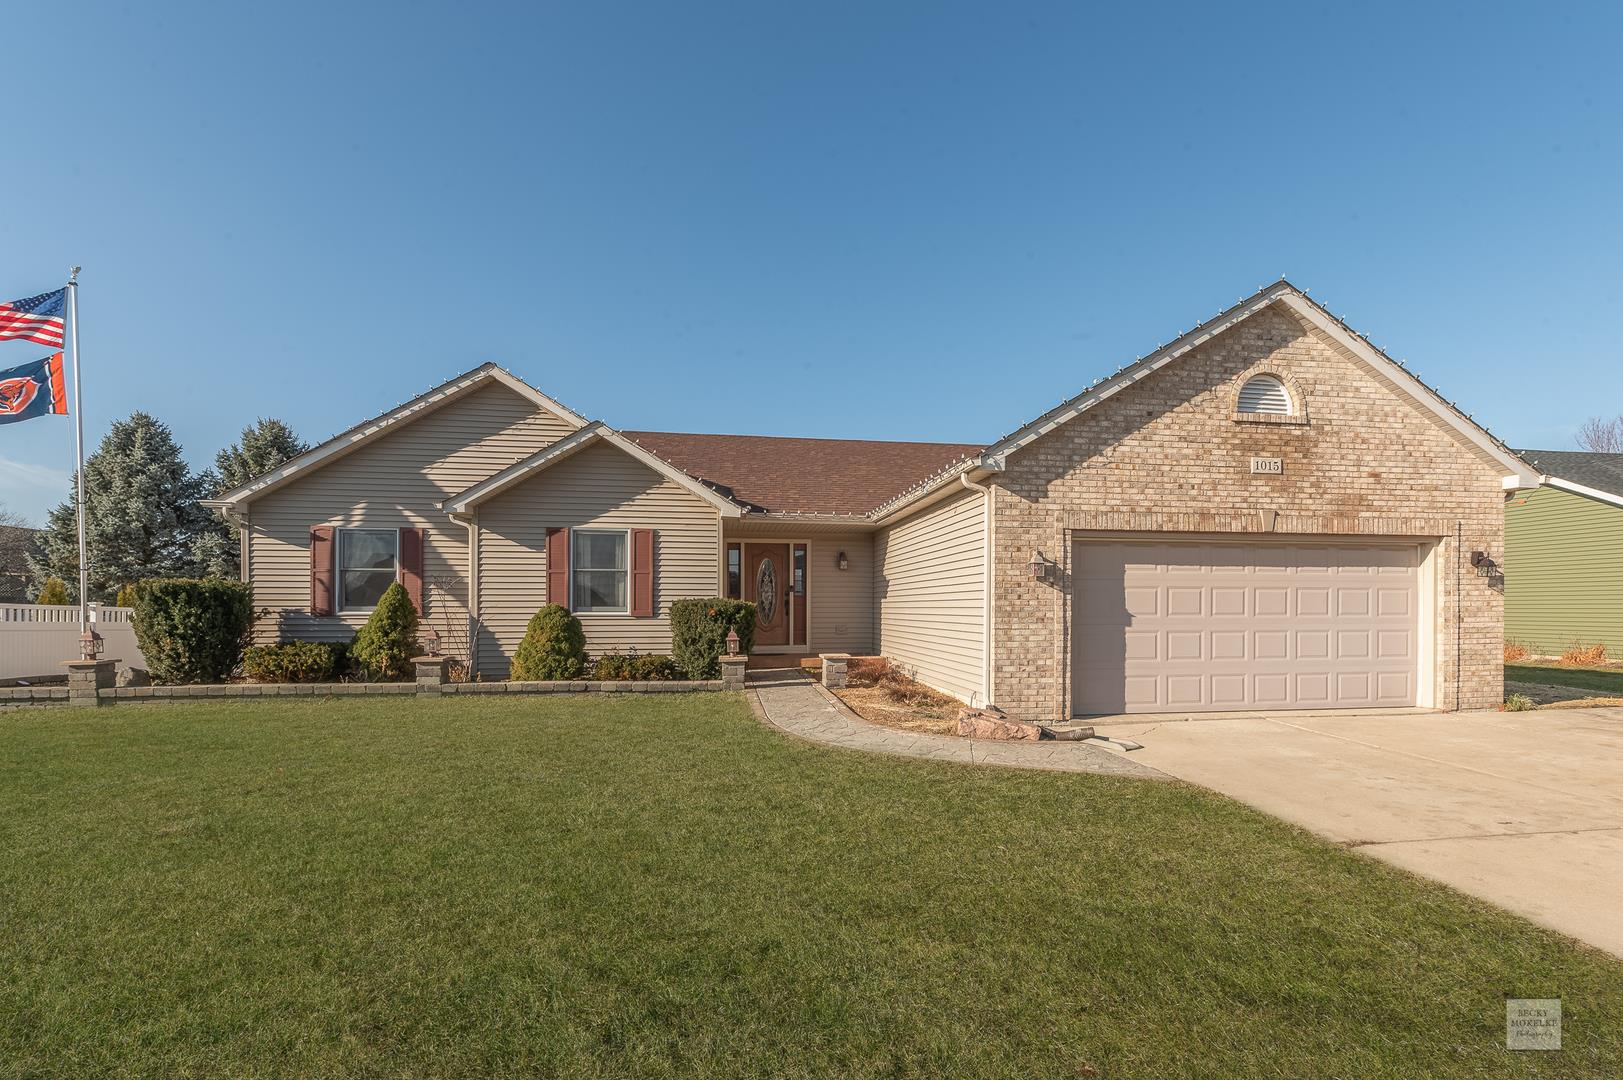 1015 Deer Run Trail, Sandwich, IL 60548 - #: 10955211